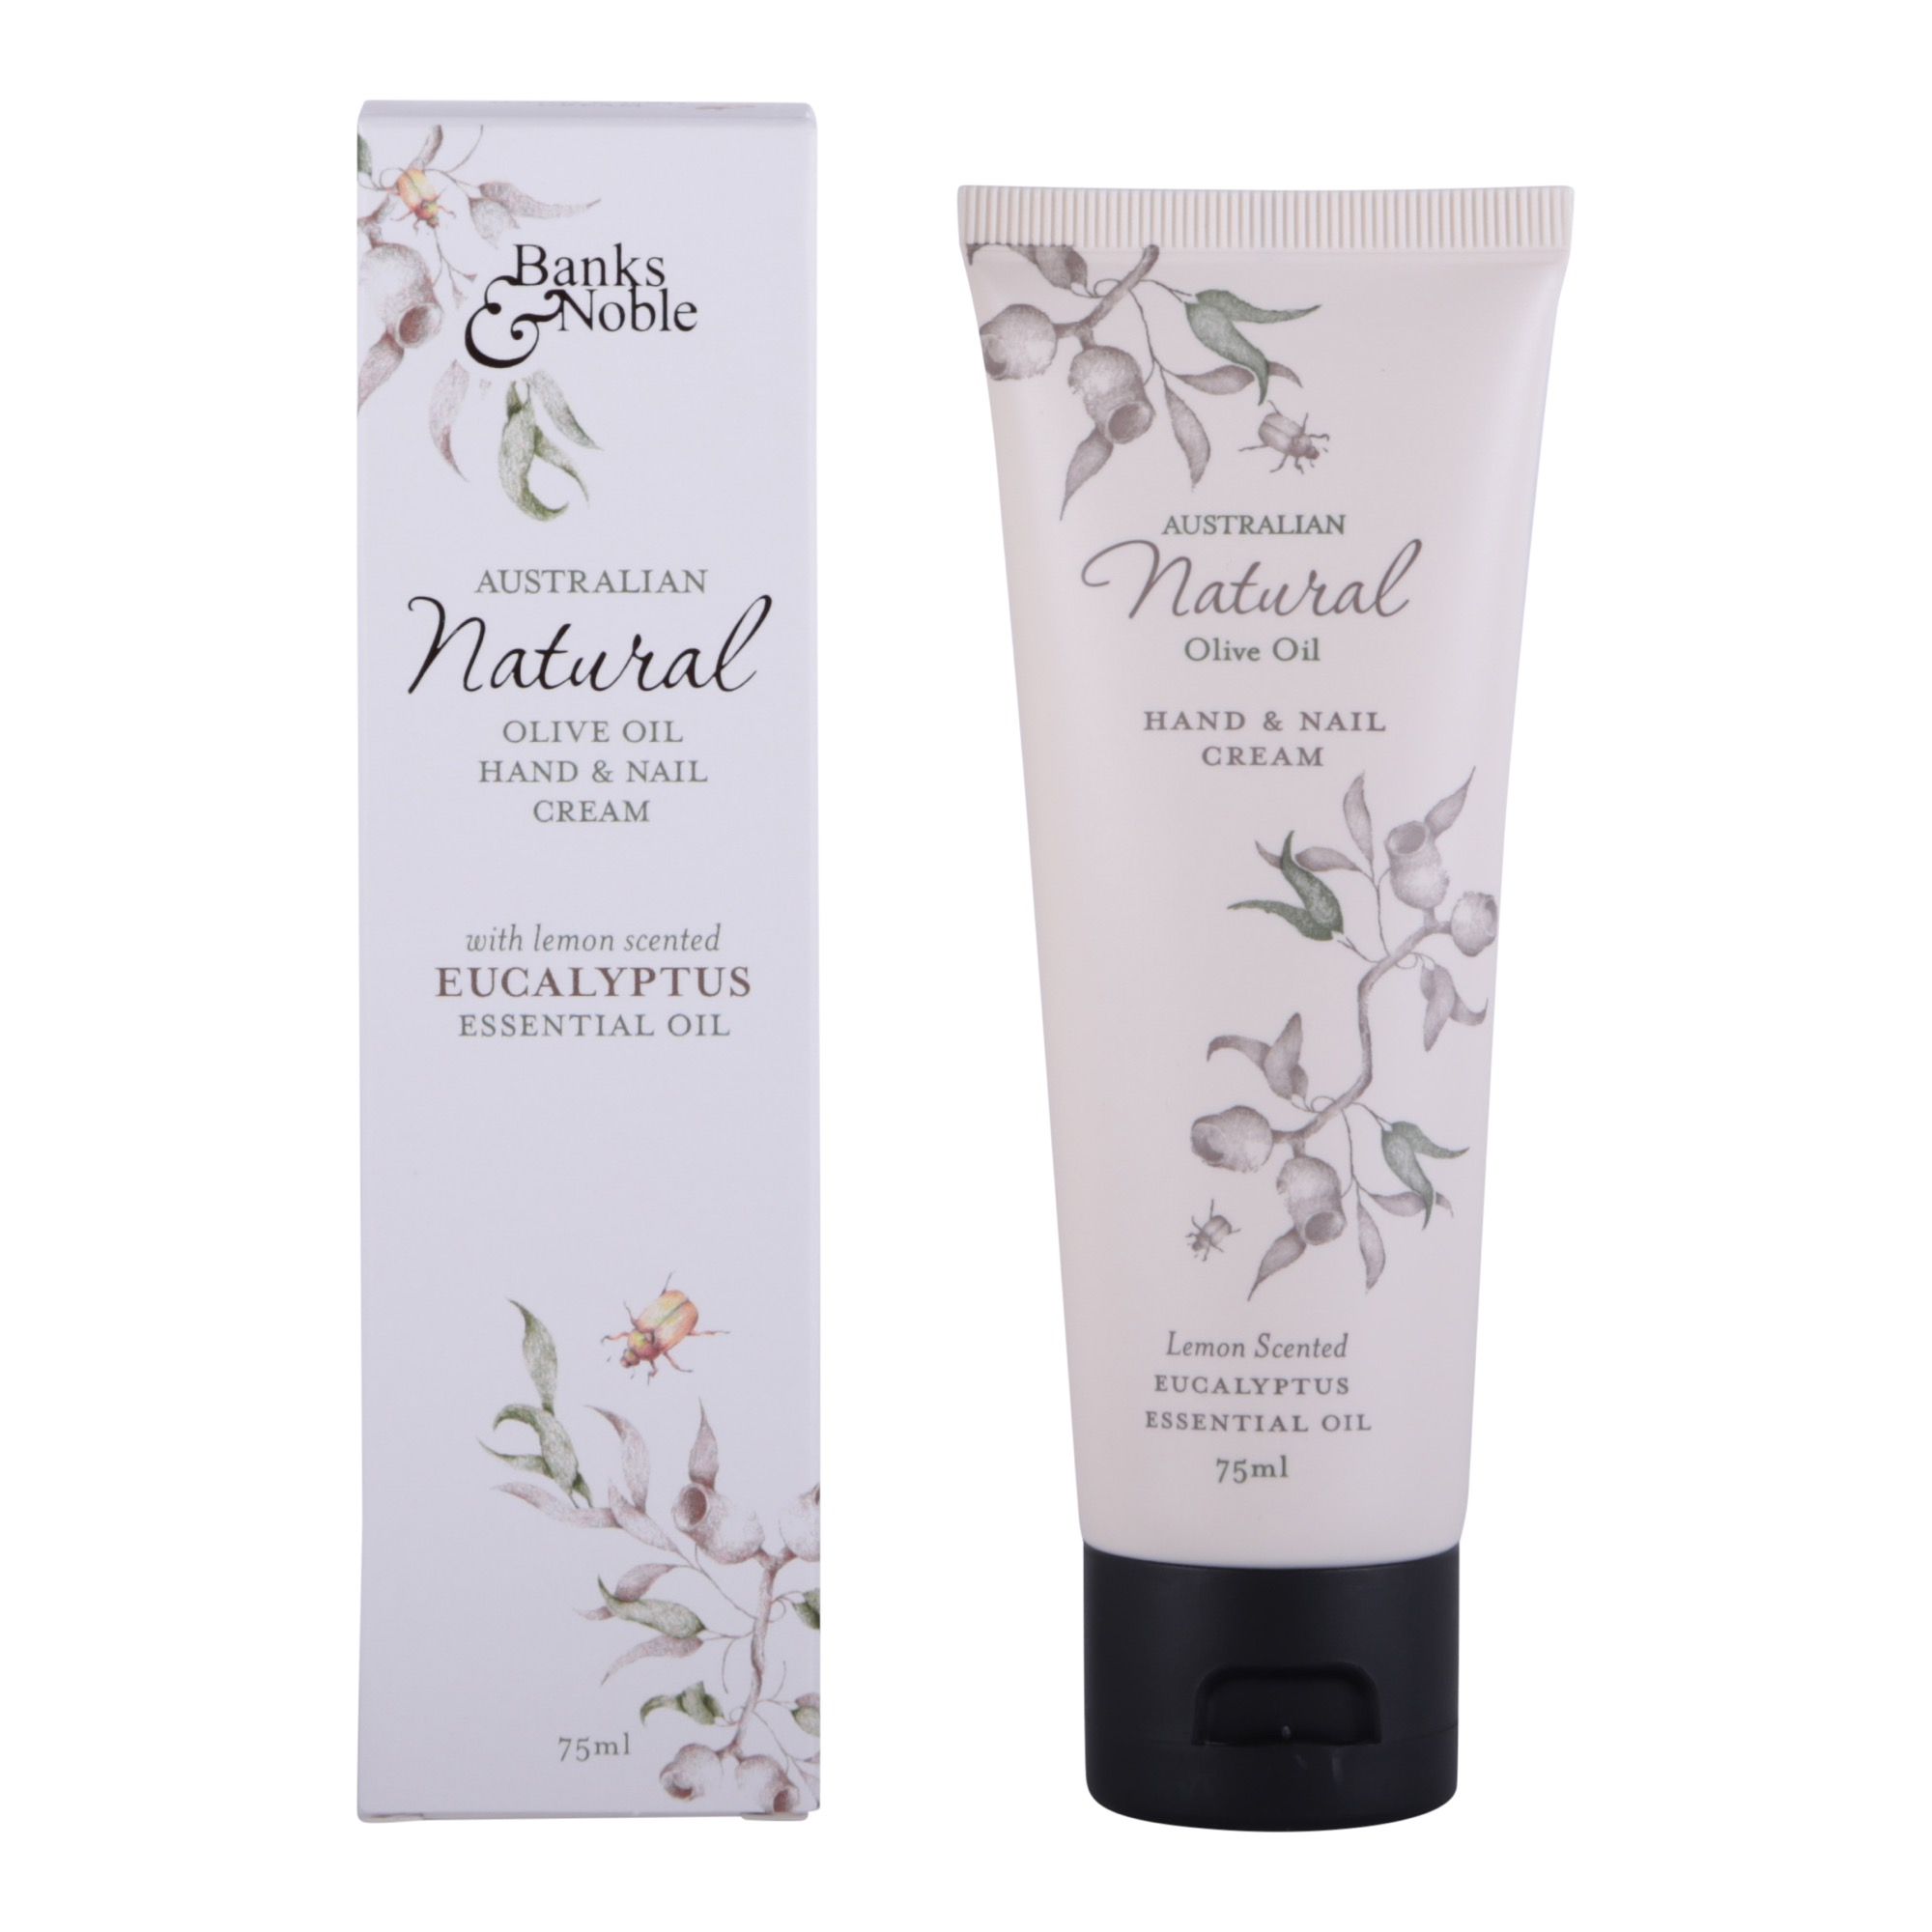 Natural Olive Oil & Eucalptus Hand Cream - TESTER - Max of 2